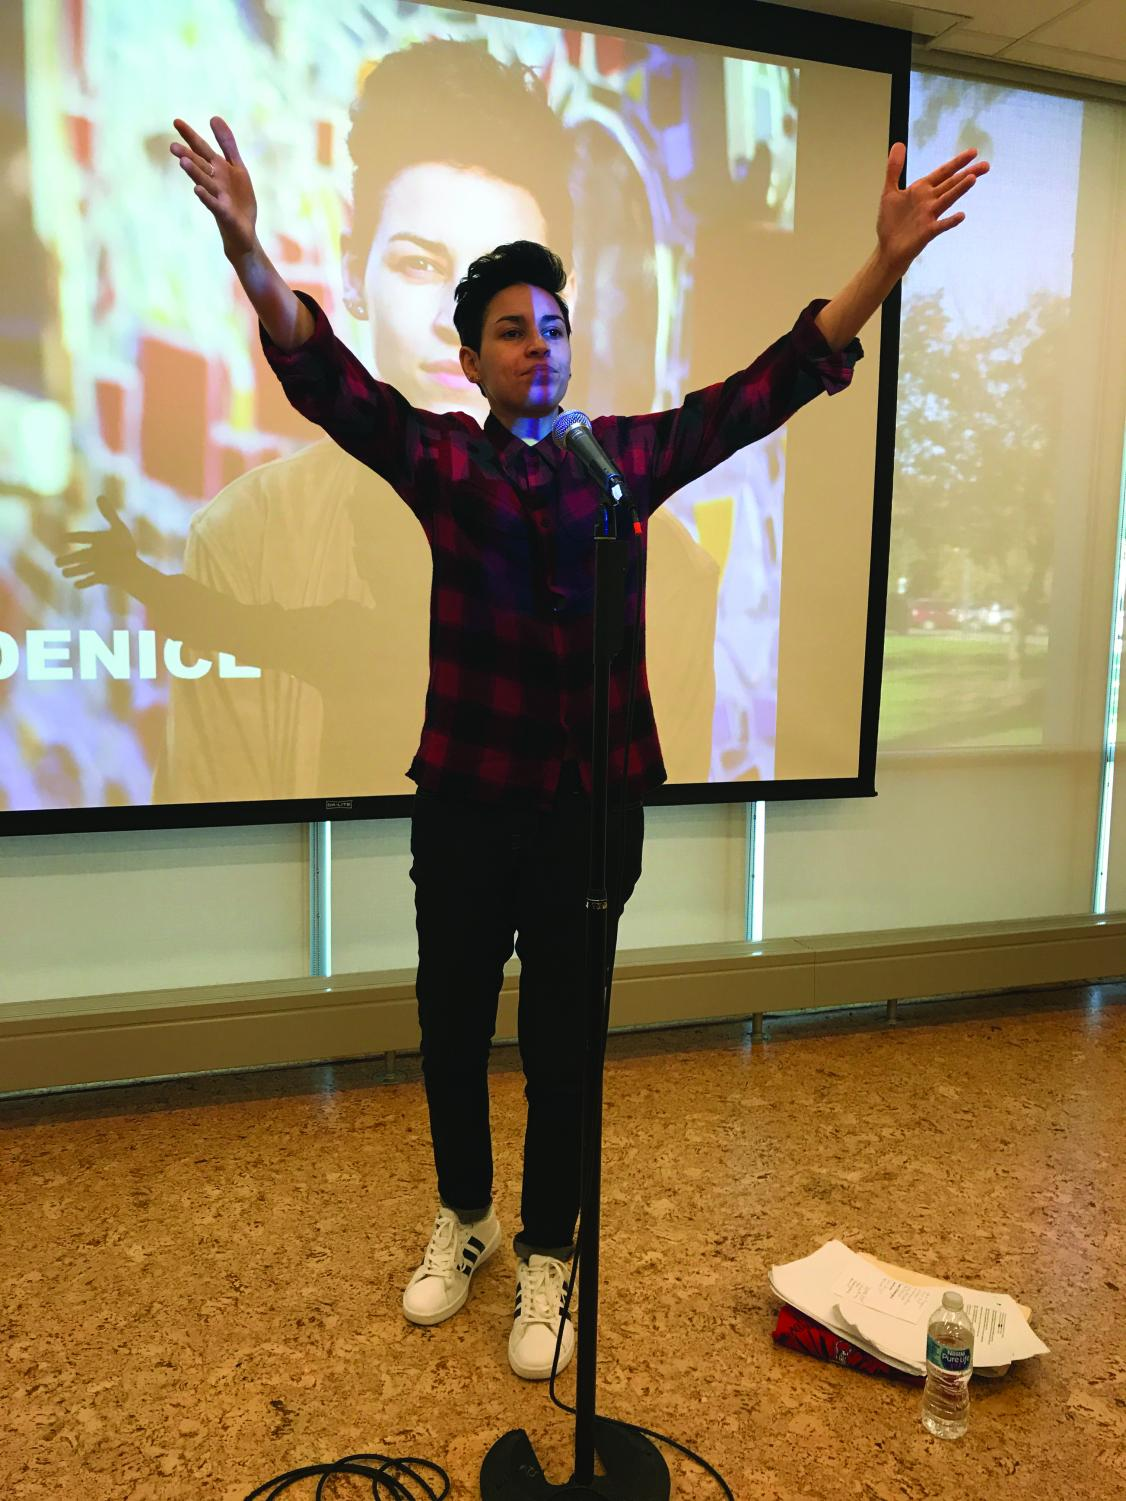 Some of Denice Frohman's poems can be found on her website, denicefrohman.com. She is currently performing on several other campuses. She is scheduled to appear at Western Washington University in Bellingham, WA on Nov. 2.